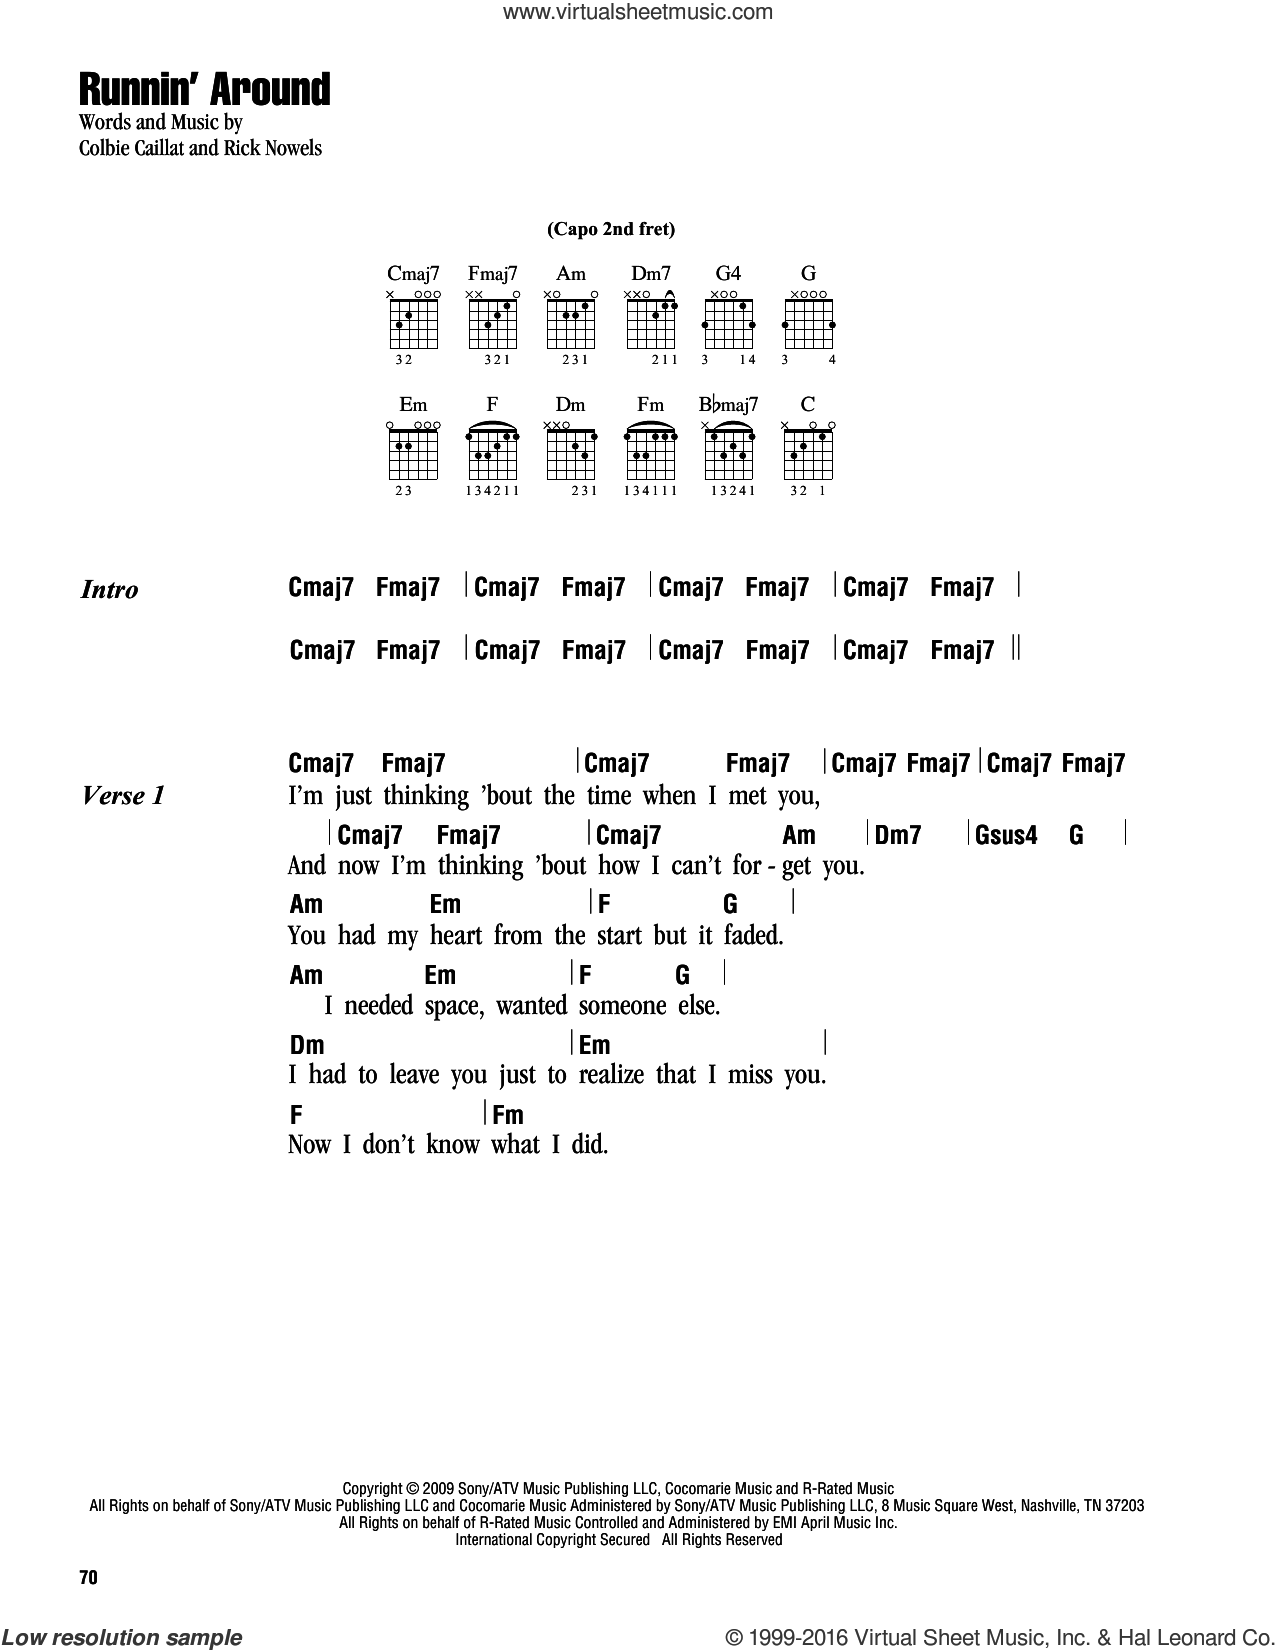 Runnin' Around sheet music for guitar (chords) by Colbie Caillat and Rick Nowels, intermediate. Score Image Preview.